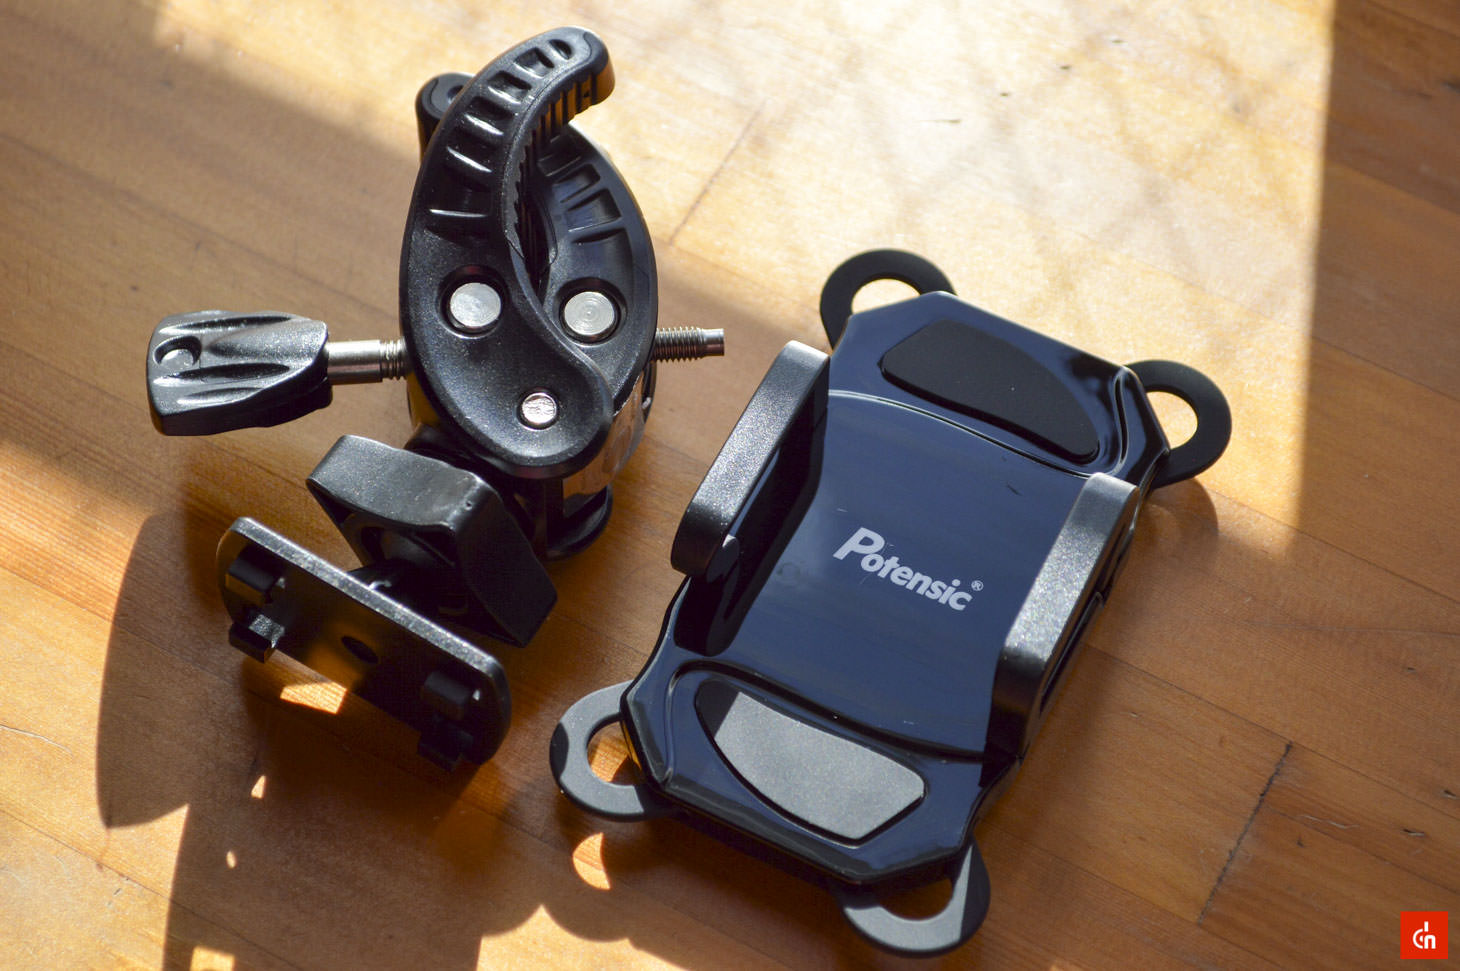 003_20161001_potensic-cycle-holder